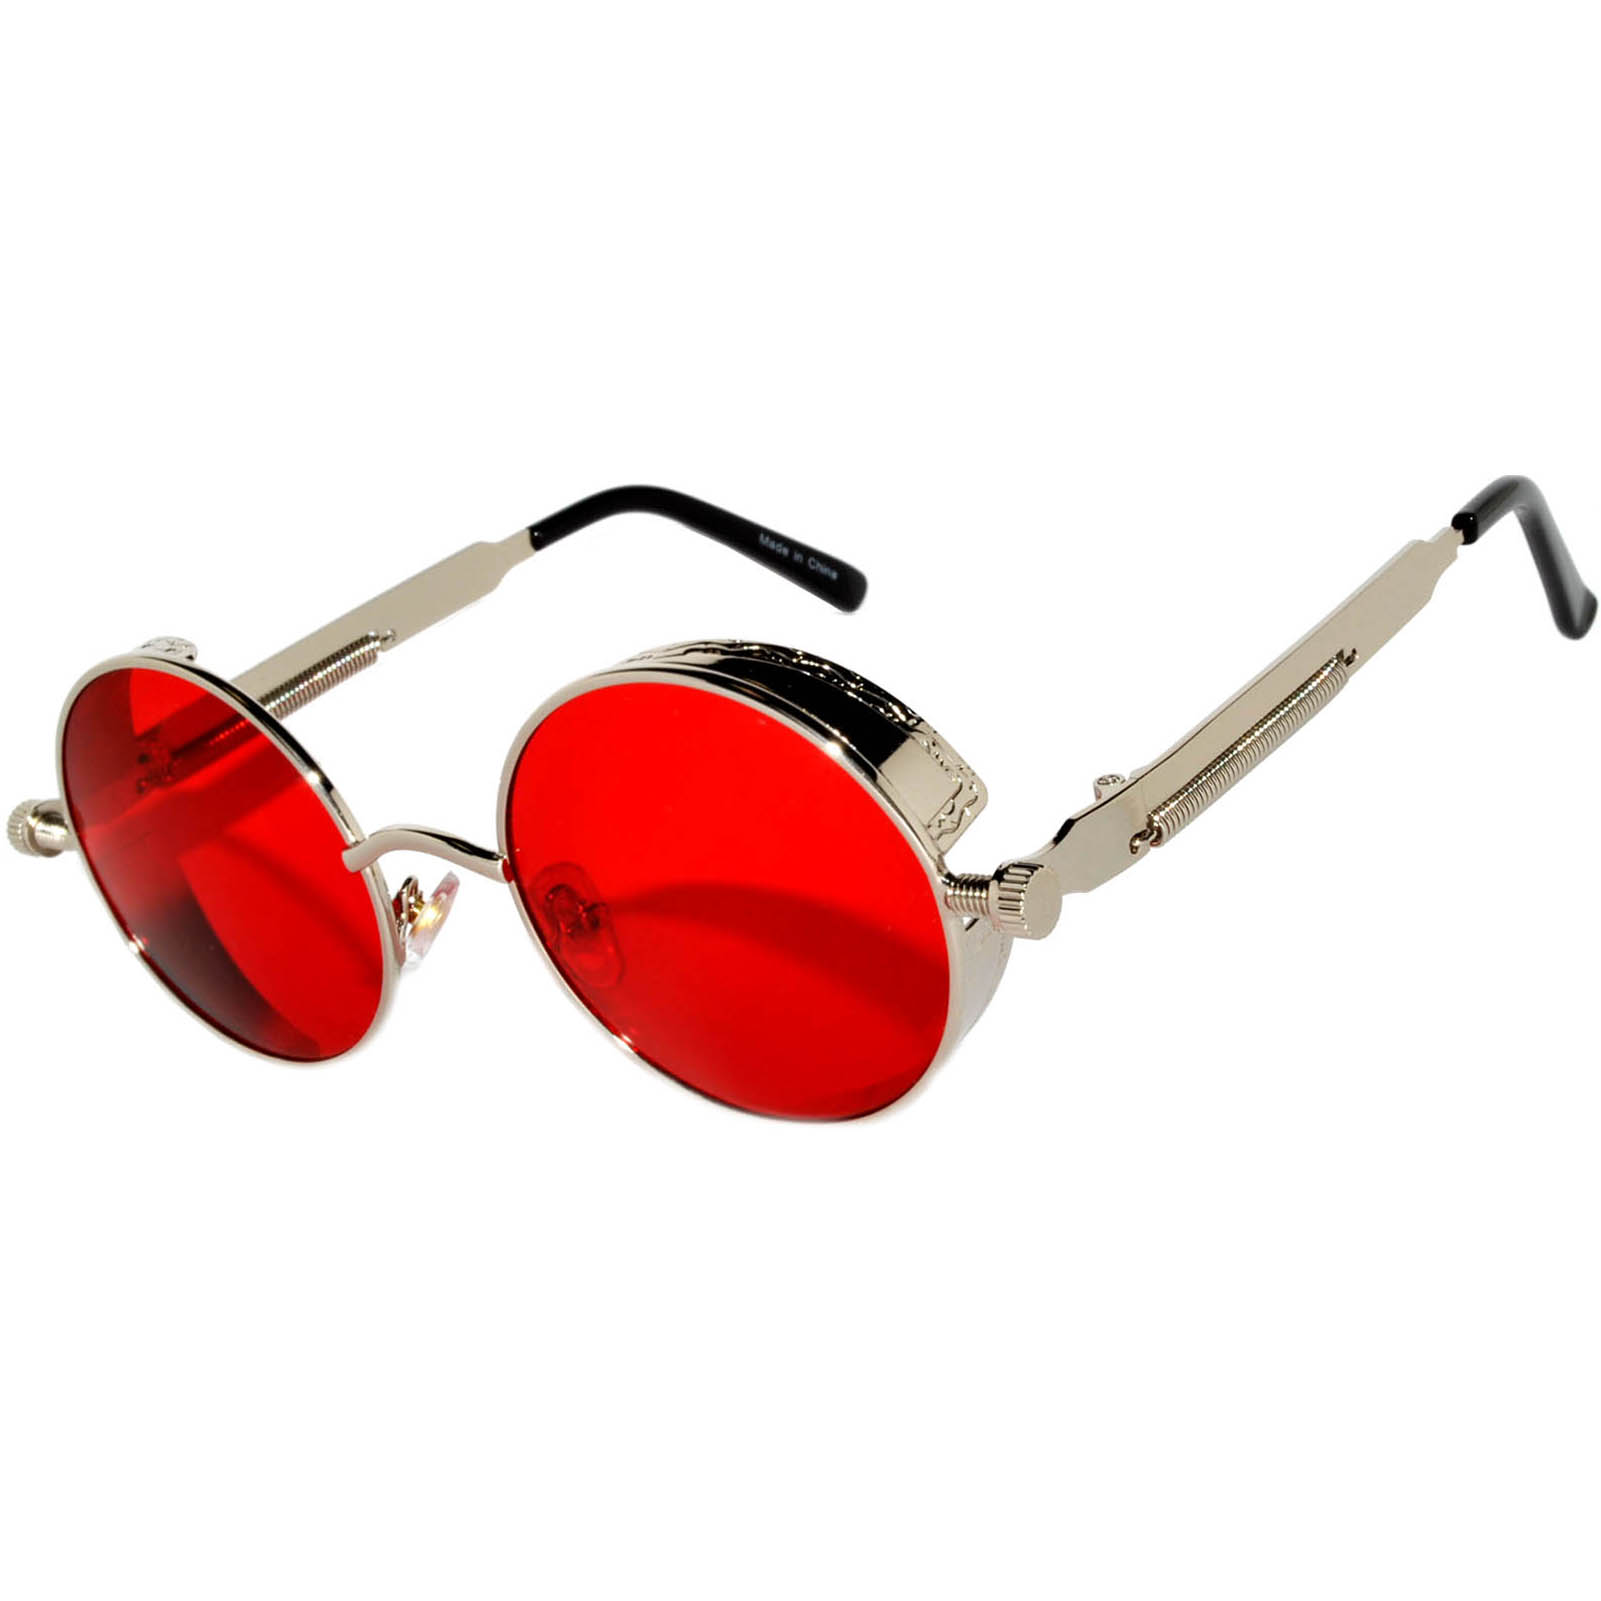 9ed8be1293c82 060 C12 Steampunk Gothic Sunglasses Metal Round Circle Silver Frame ...